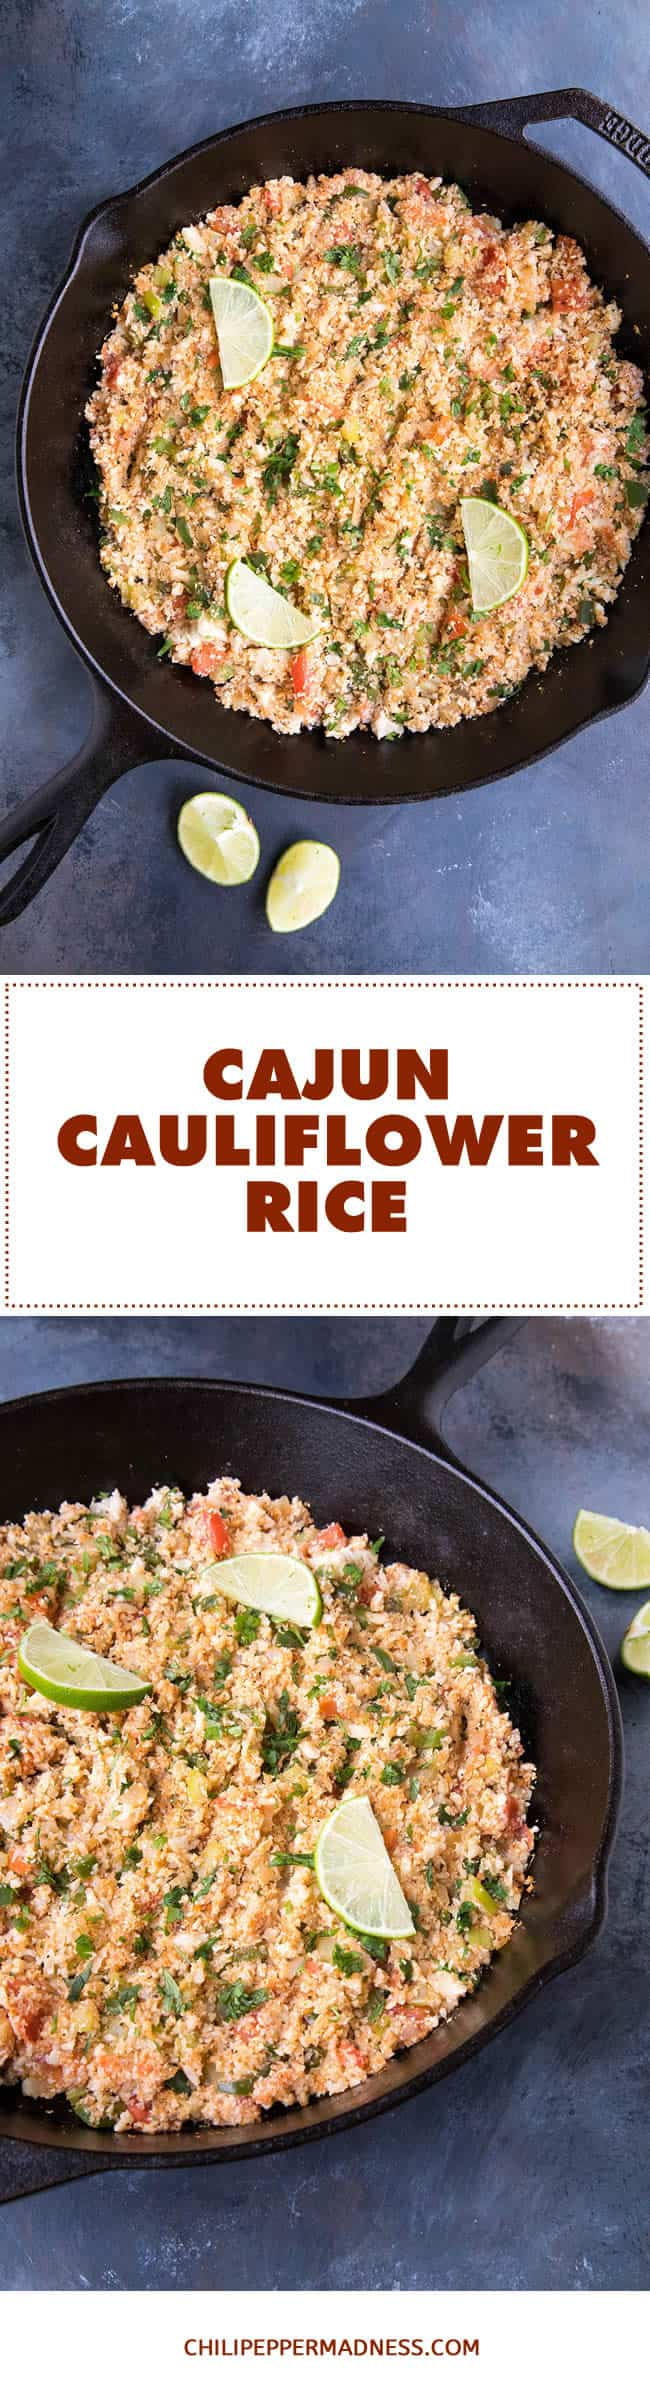 Cajun Cauliflower Rice - Recipe | ChiliPepperMadness.com #Cajun #Cauliflower #LowCarb #HealthyRecipe #LowCalorie